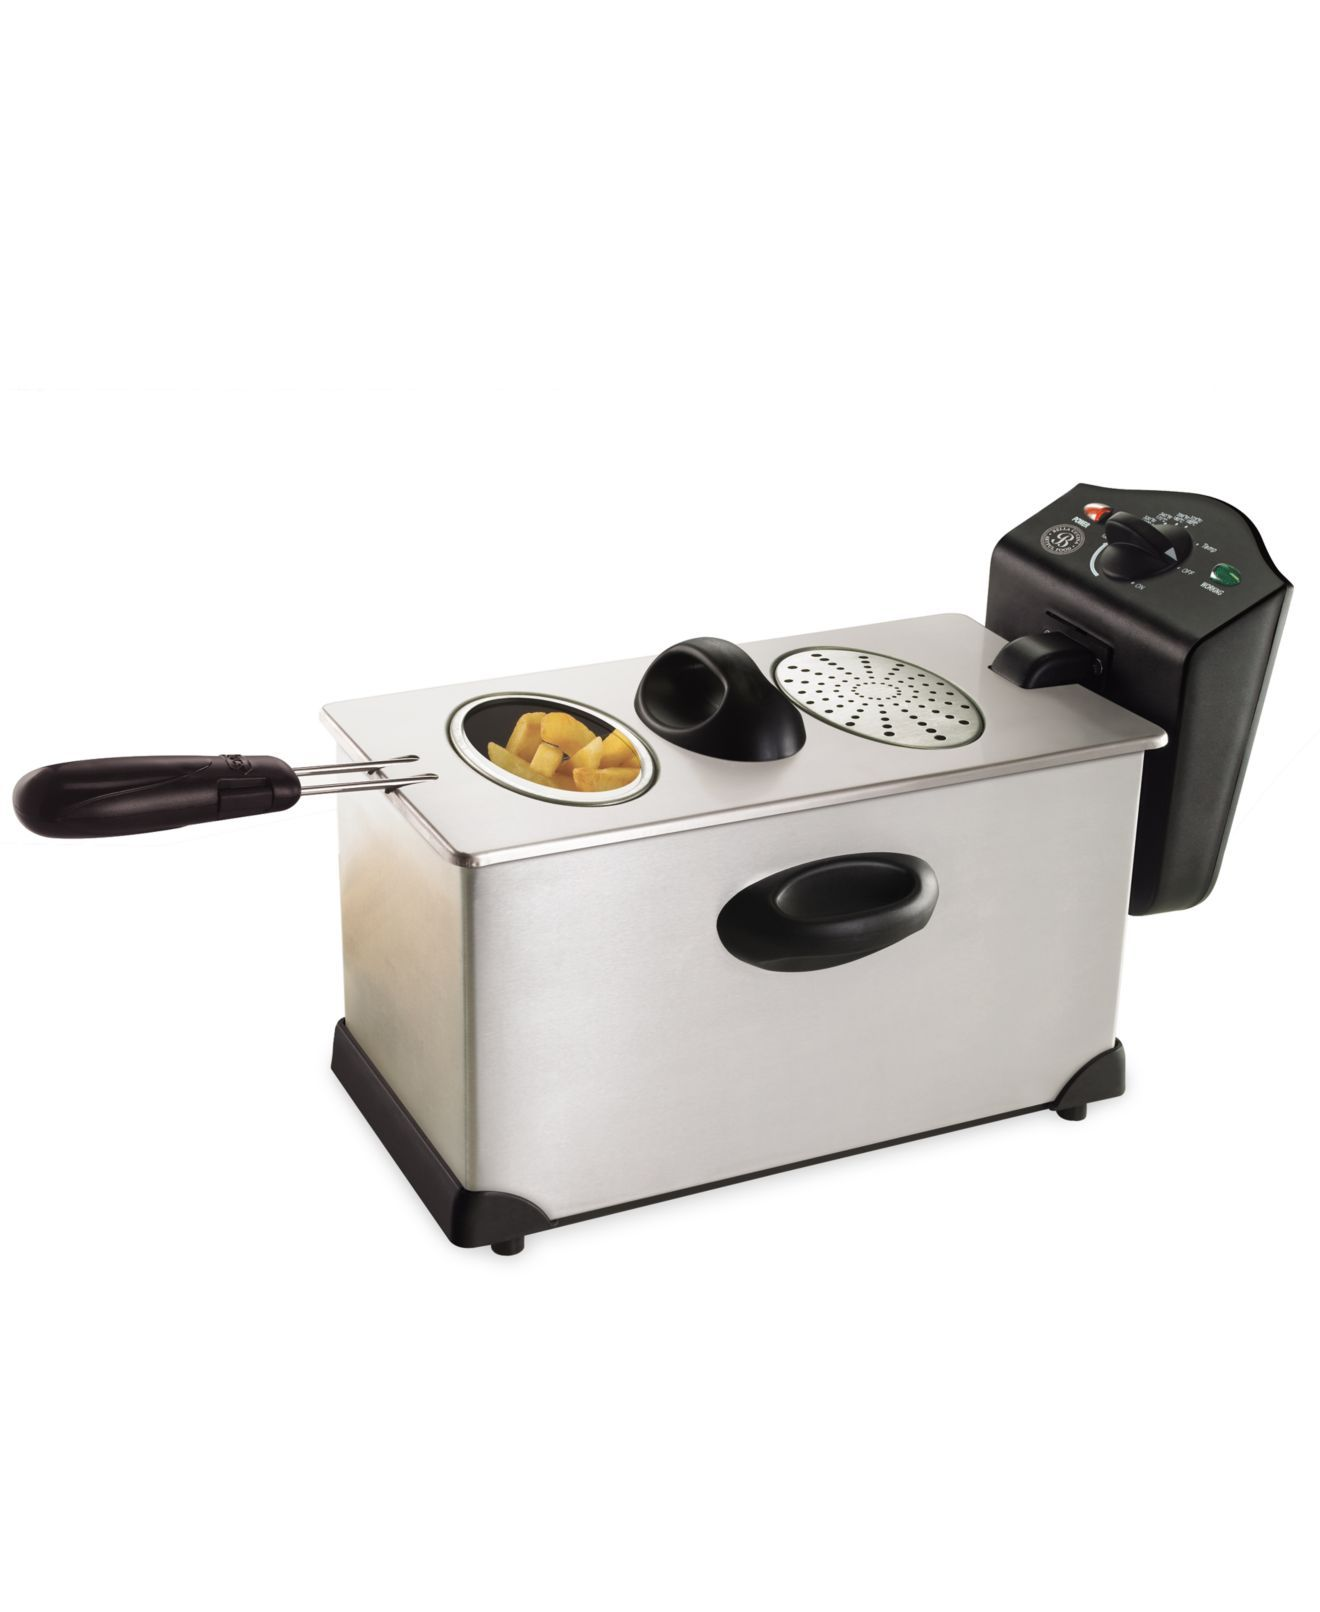 13401 3.5L Stainless Steel Deep Fryer Health cooking